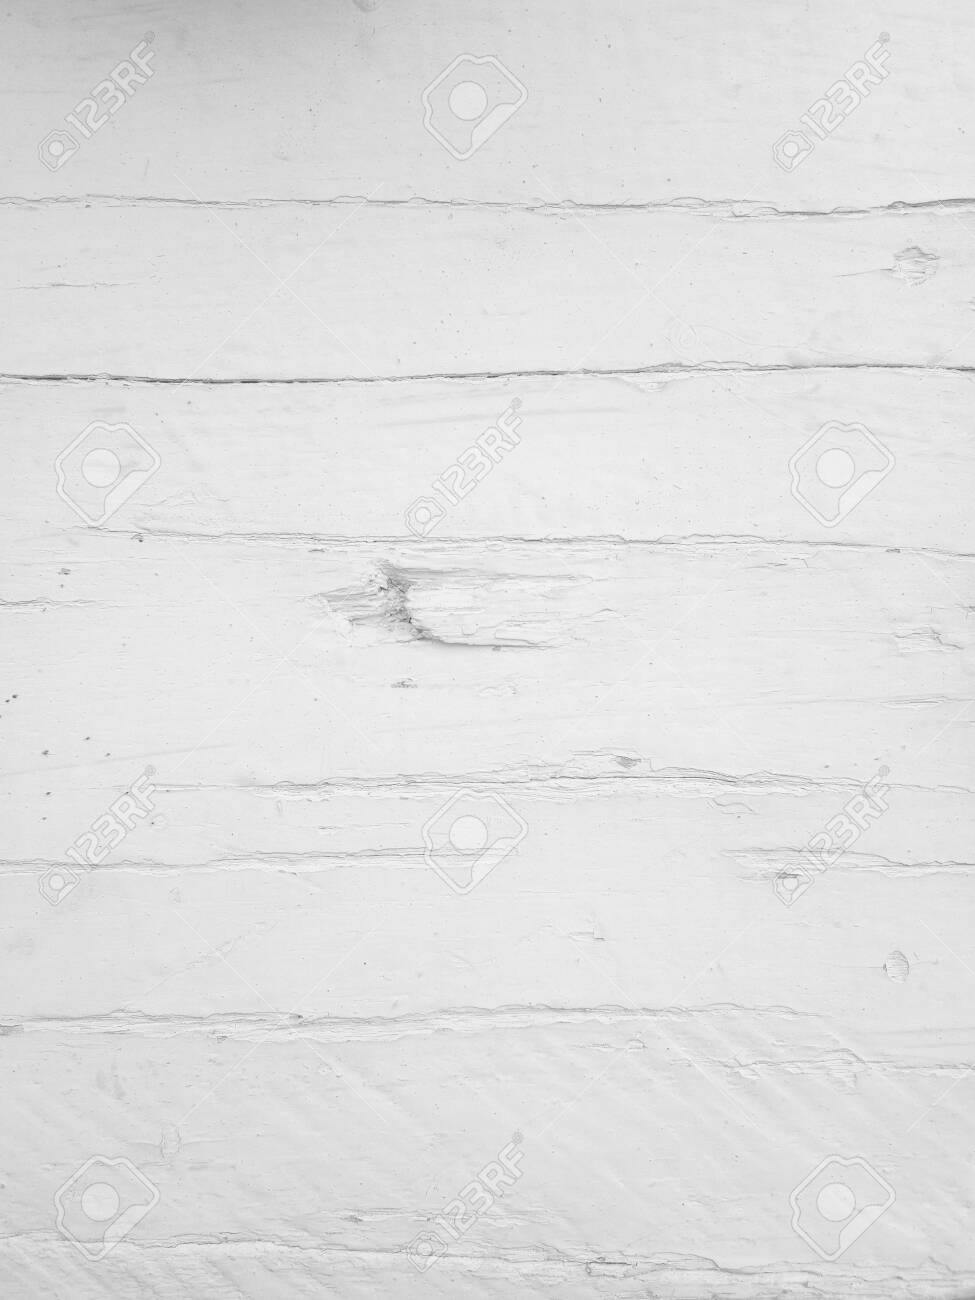 White wooden texture background in vintage style. Soft board for graphic design or wallpaper. - 158276542